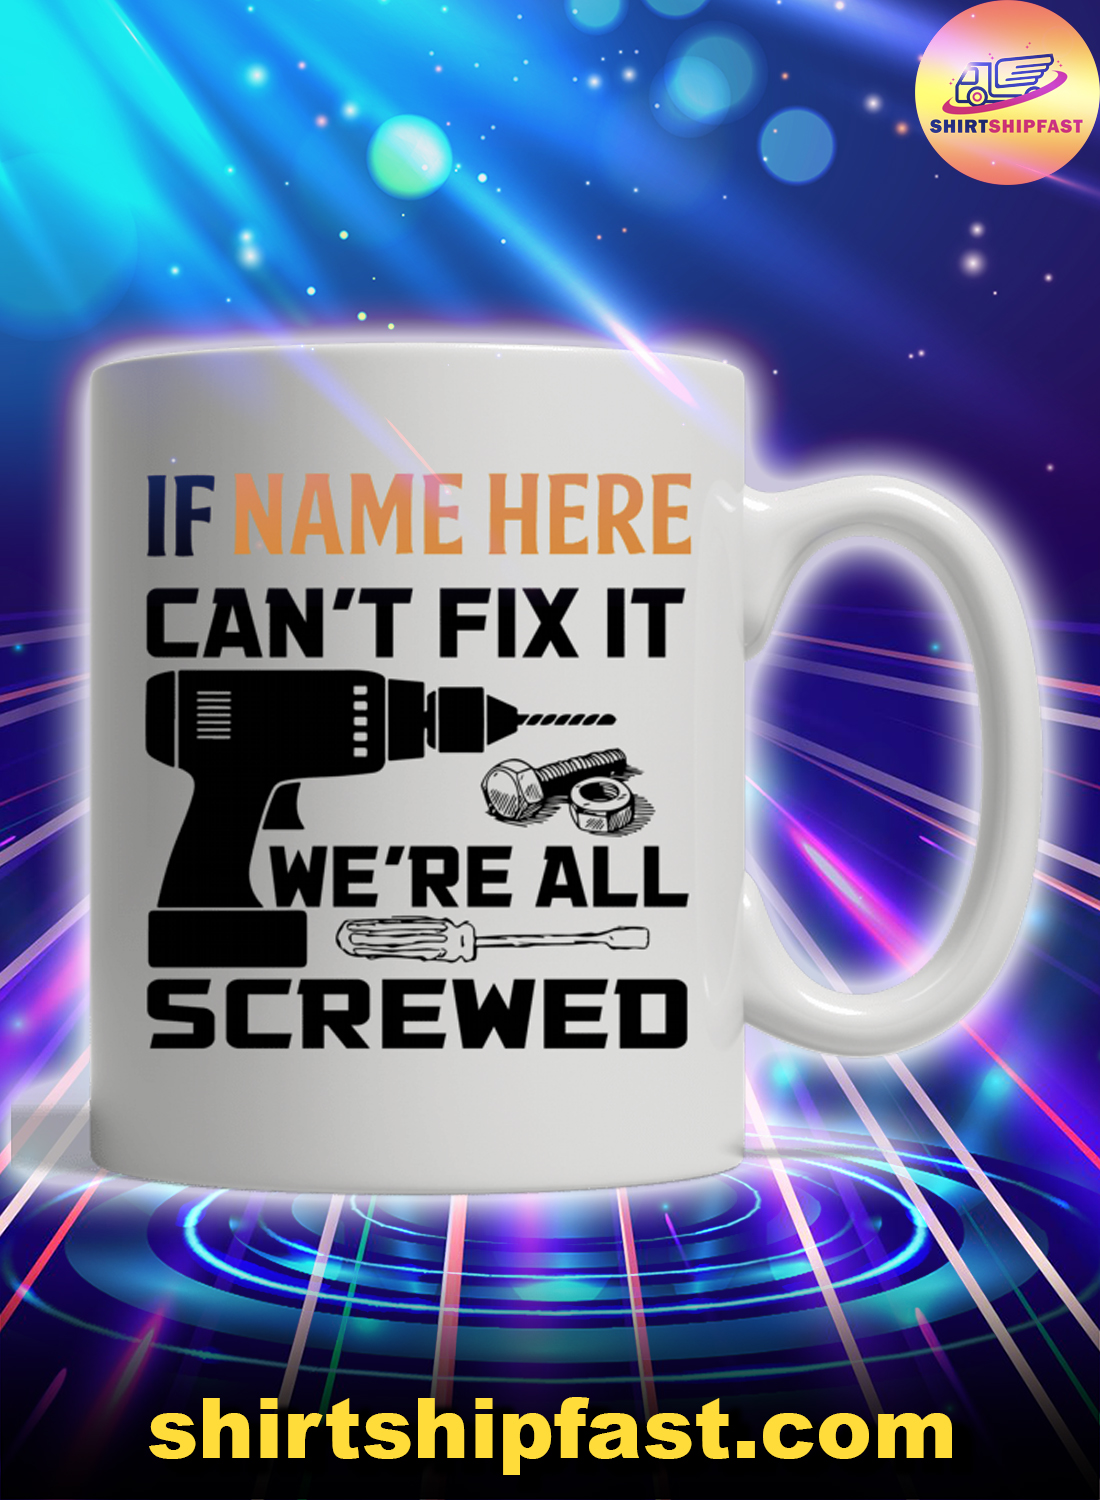 If can't fix it we're all screwed personalized custom name mug